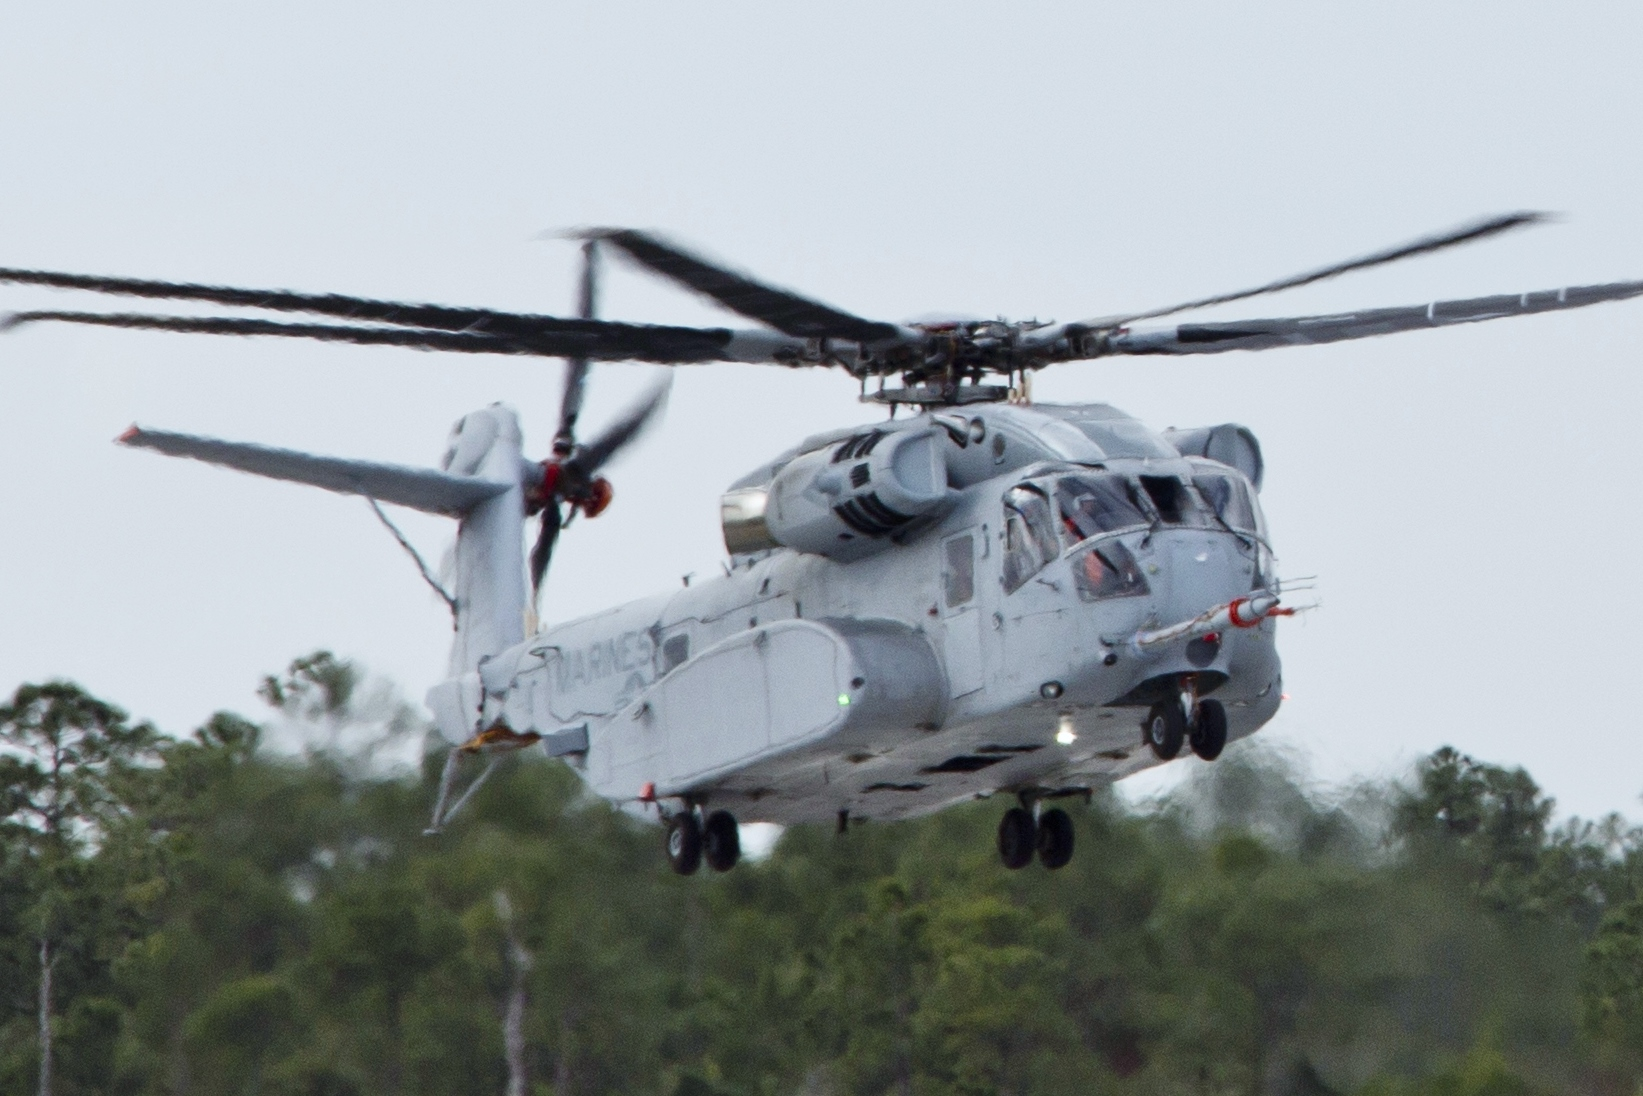 53k helicopter with Future Us Marines Will Fly Beast Battle 22198 on 252472 New King Stallion Helicopter Packs Massive Punch Will Ready Next Year besides Ch 53k King Stallion Pentagons Expensive Aircraft further Index cfm likewise Ch 47f rockwell likewise Sikorsky CH 53.